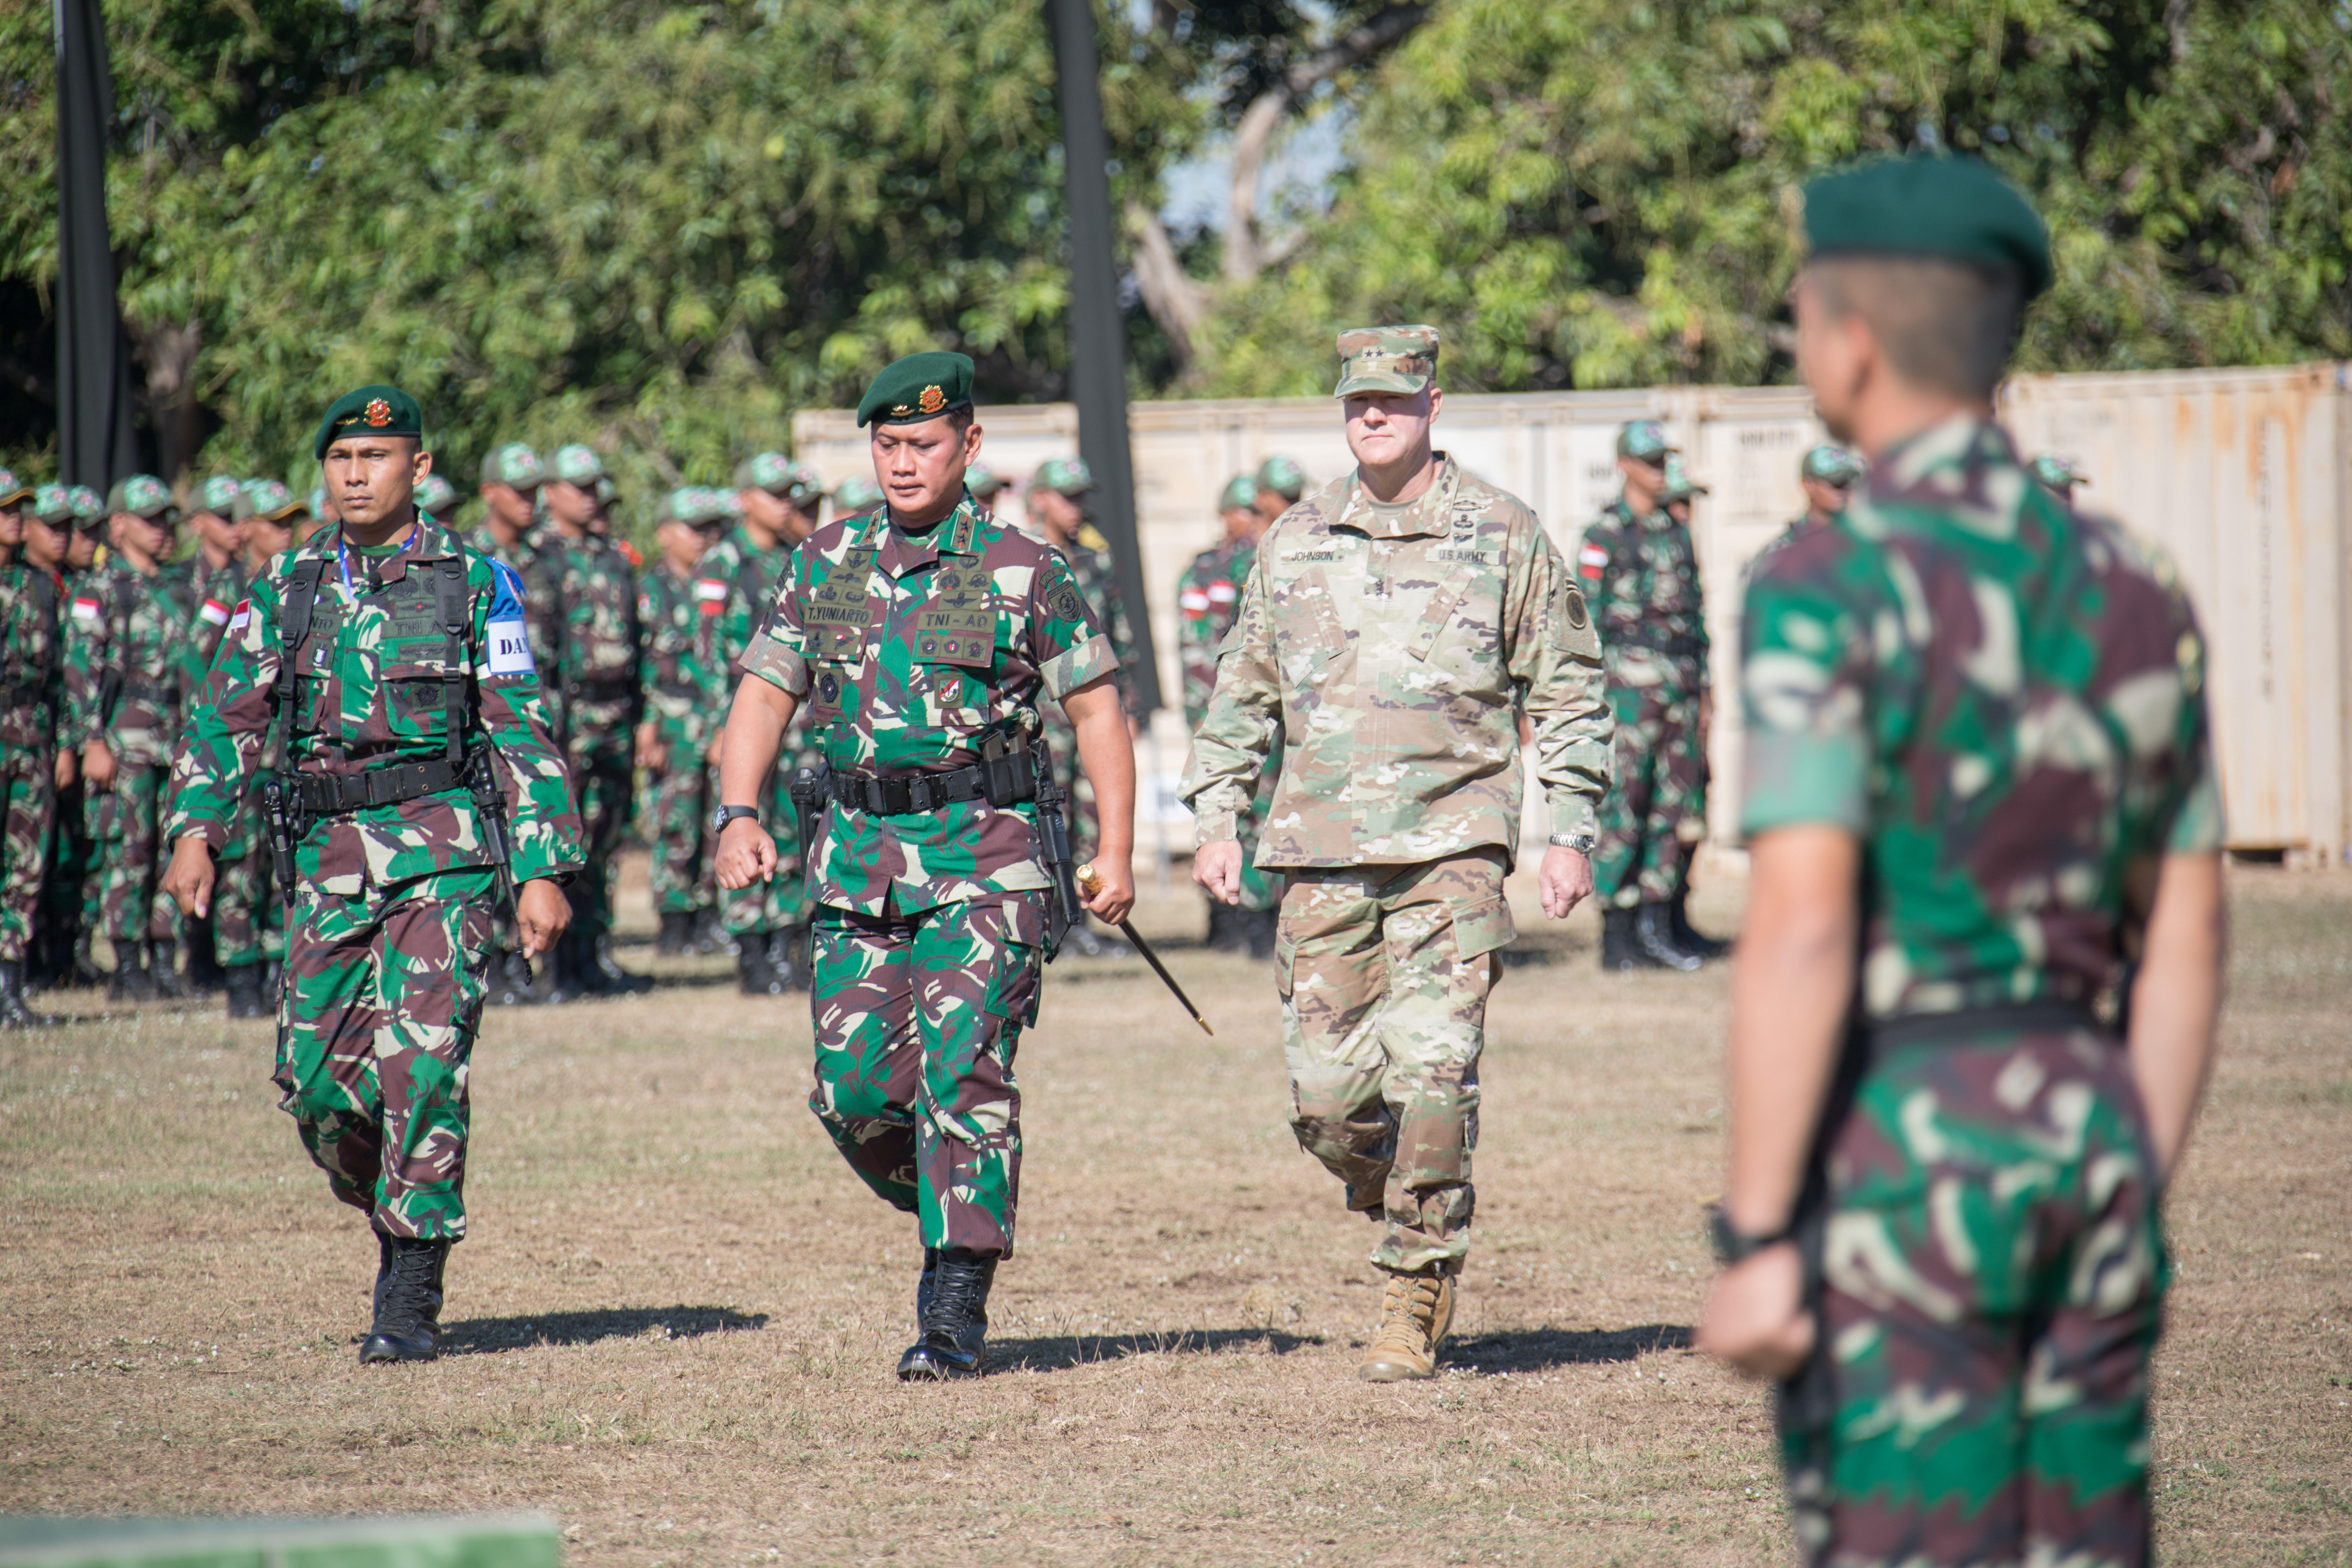 Indonesian Army Maj. Gen. Tri Yuniarto and then-Maj. Gen. Pete Johnson walk through a formation of U.S. and Indonesian forces during the 2019 Garuda Shield opening ceremony Aug. 19, 2019, at Dodiklatpur, Indonesia. (U.S. Army)